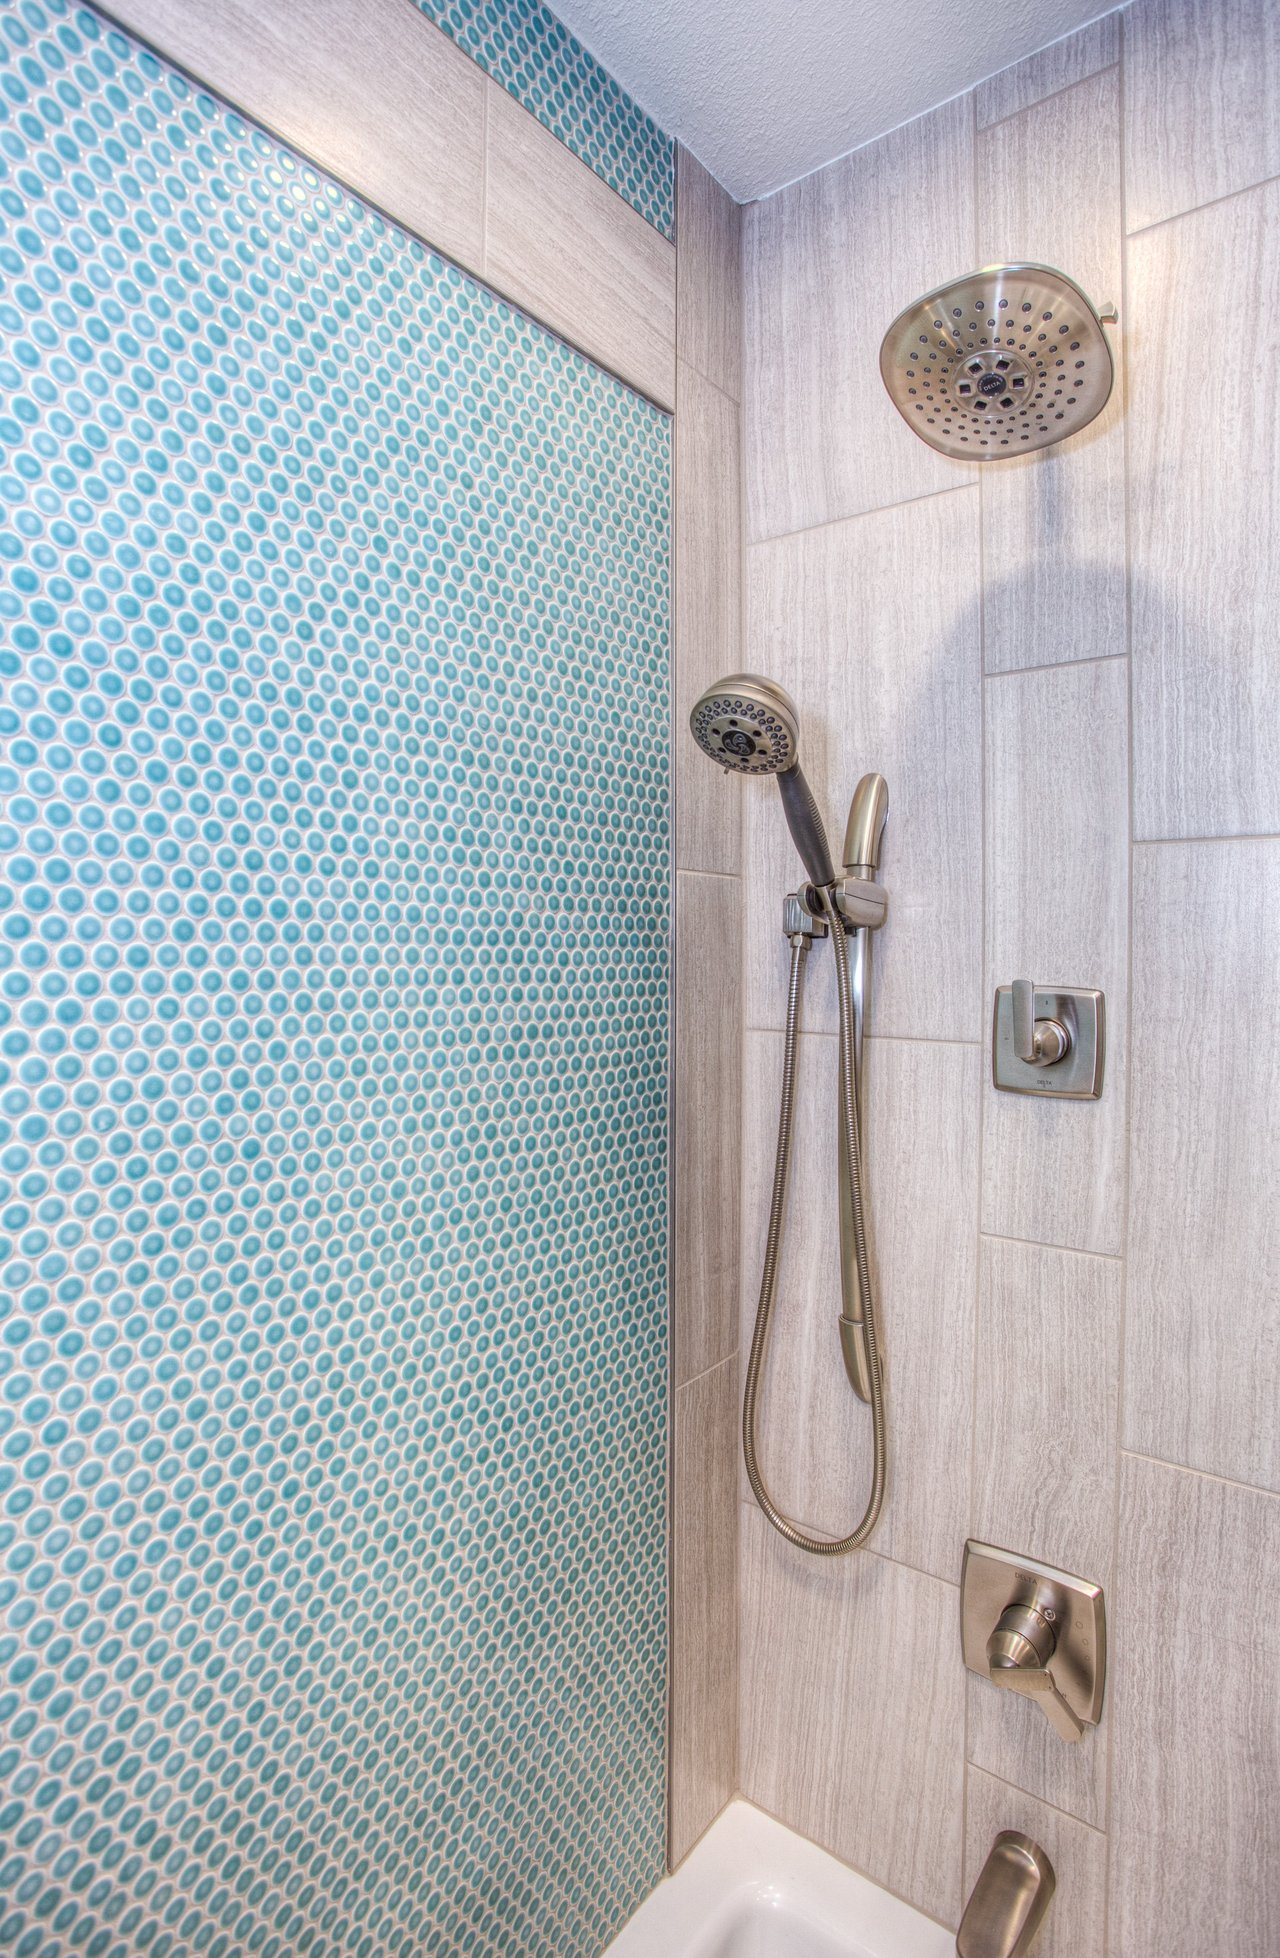 How to Find the Right Bathroom Or Shower Room Sealant